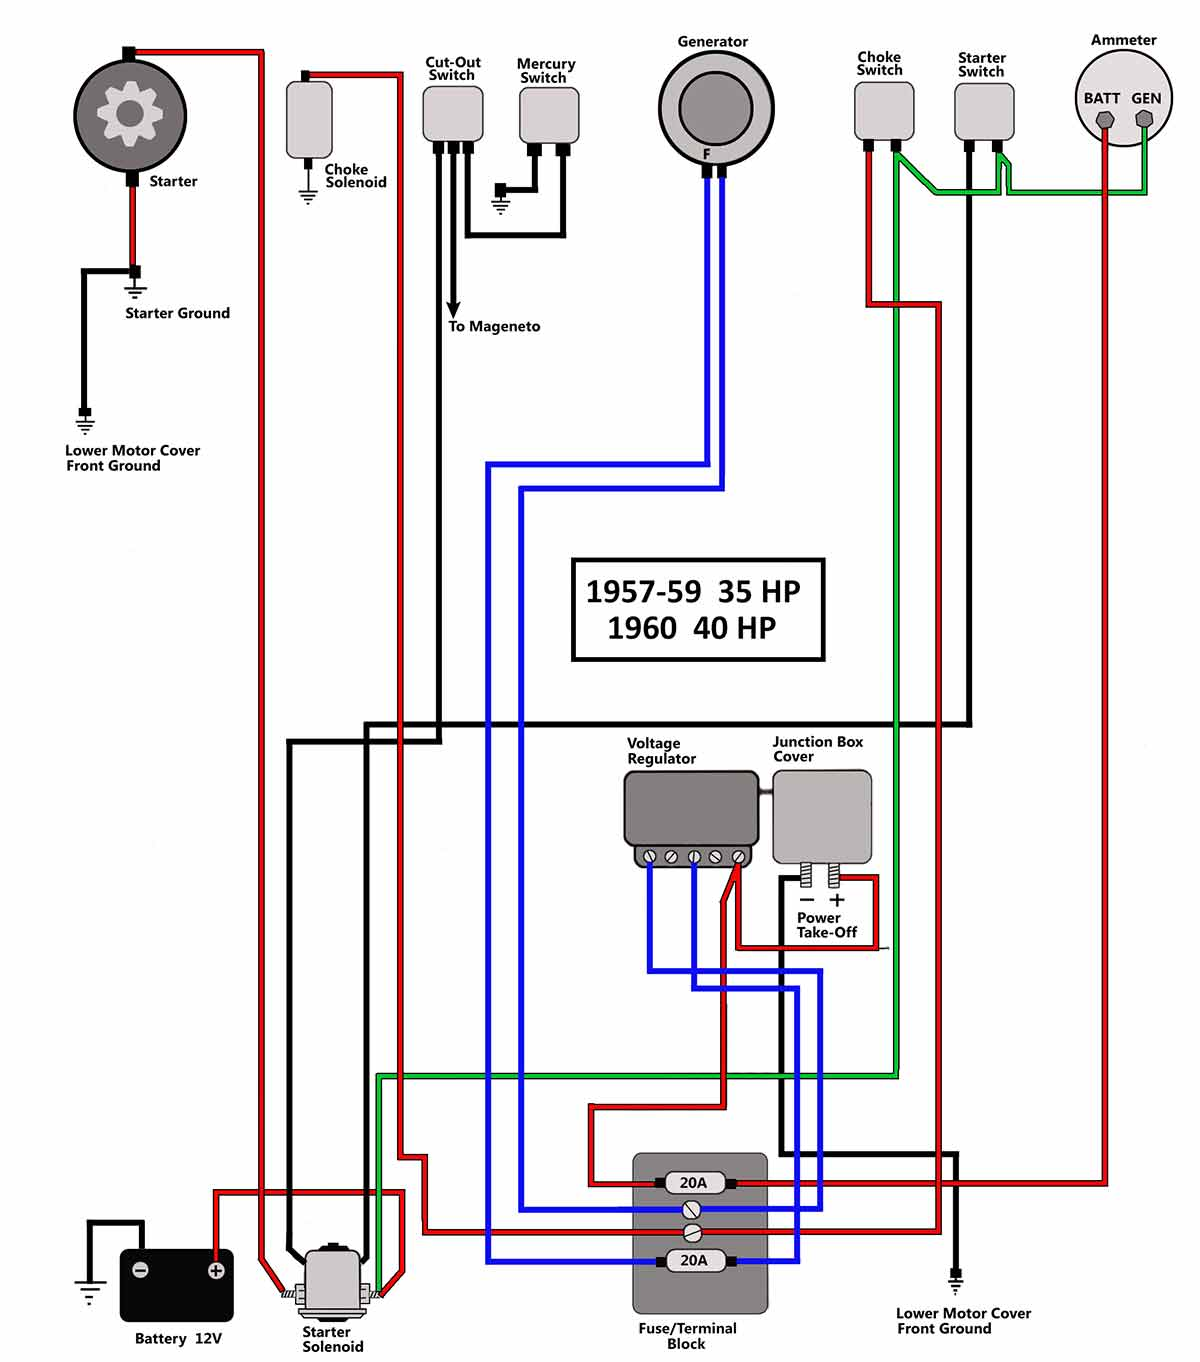 1957 60_35 40 help with wiring ignition and connecting battery to 1973 40hp johnson ignition switch wiring diagram at bayanpartner.co